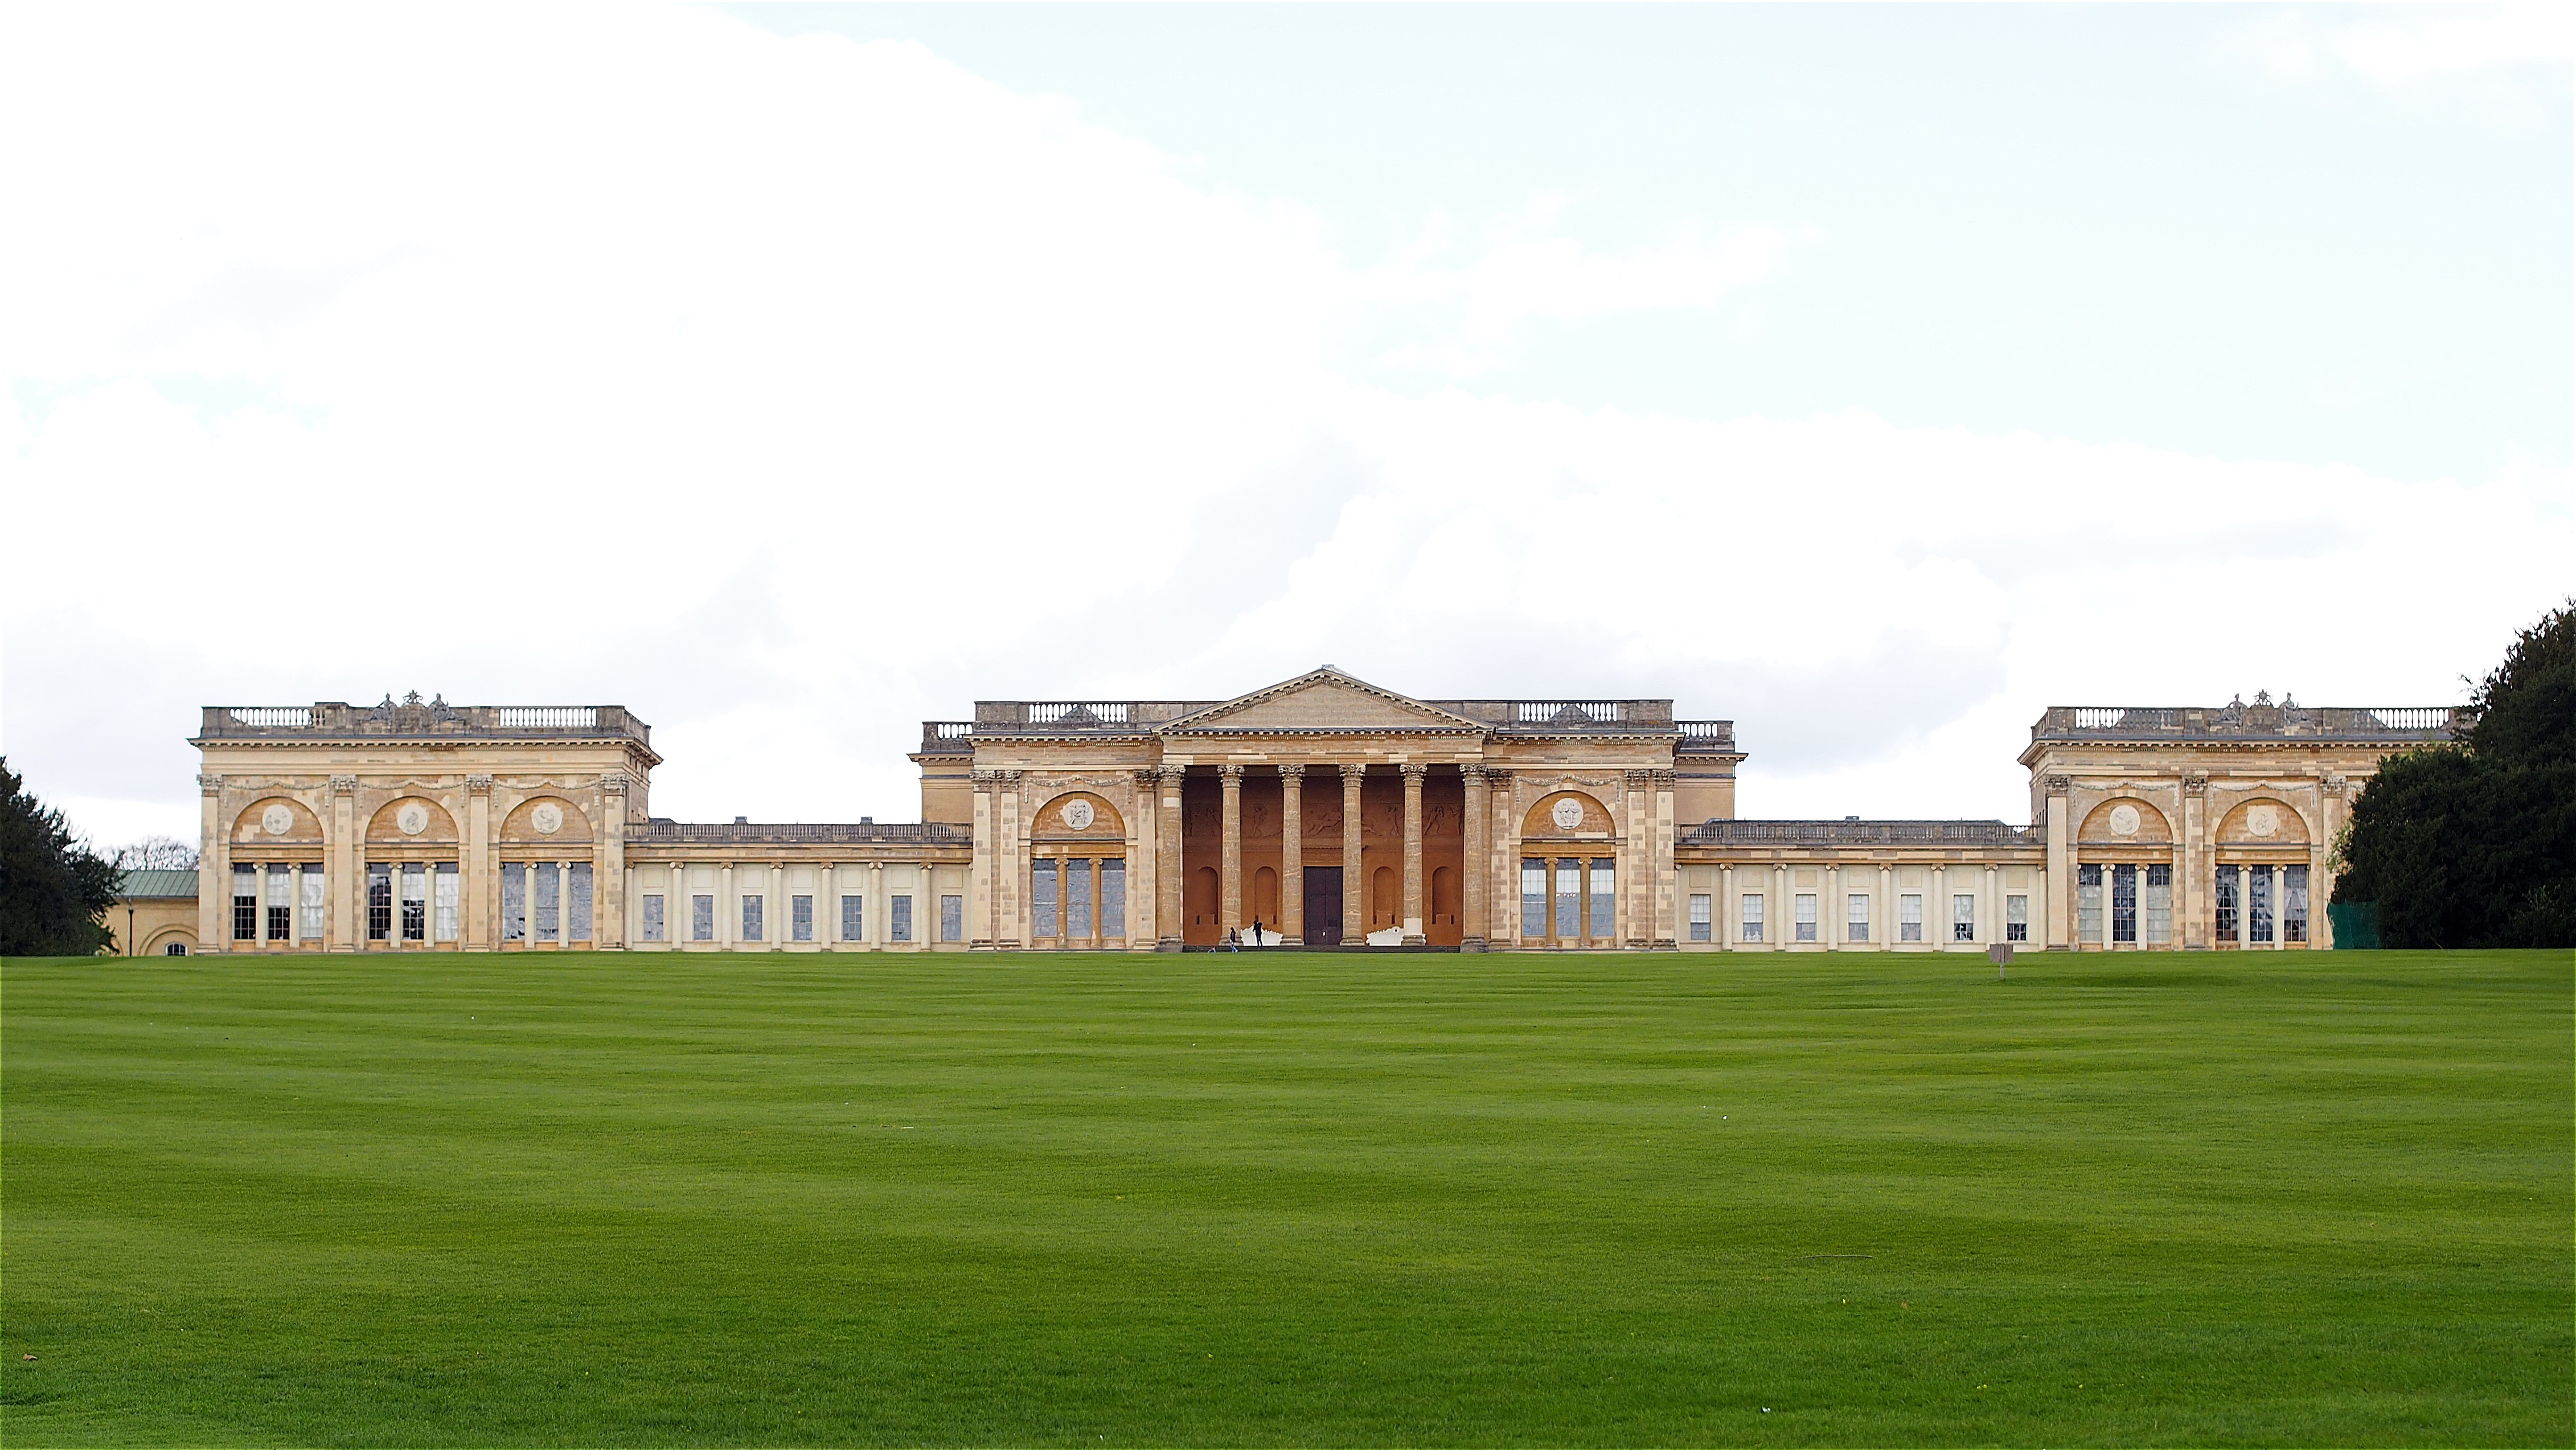 STOWE LANDSCAPED GARDENS